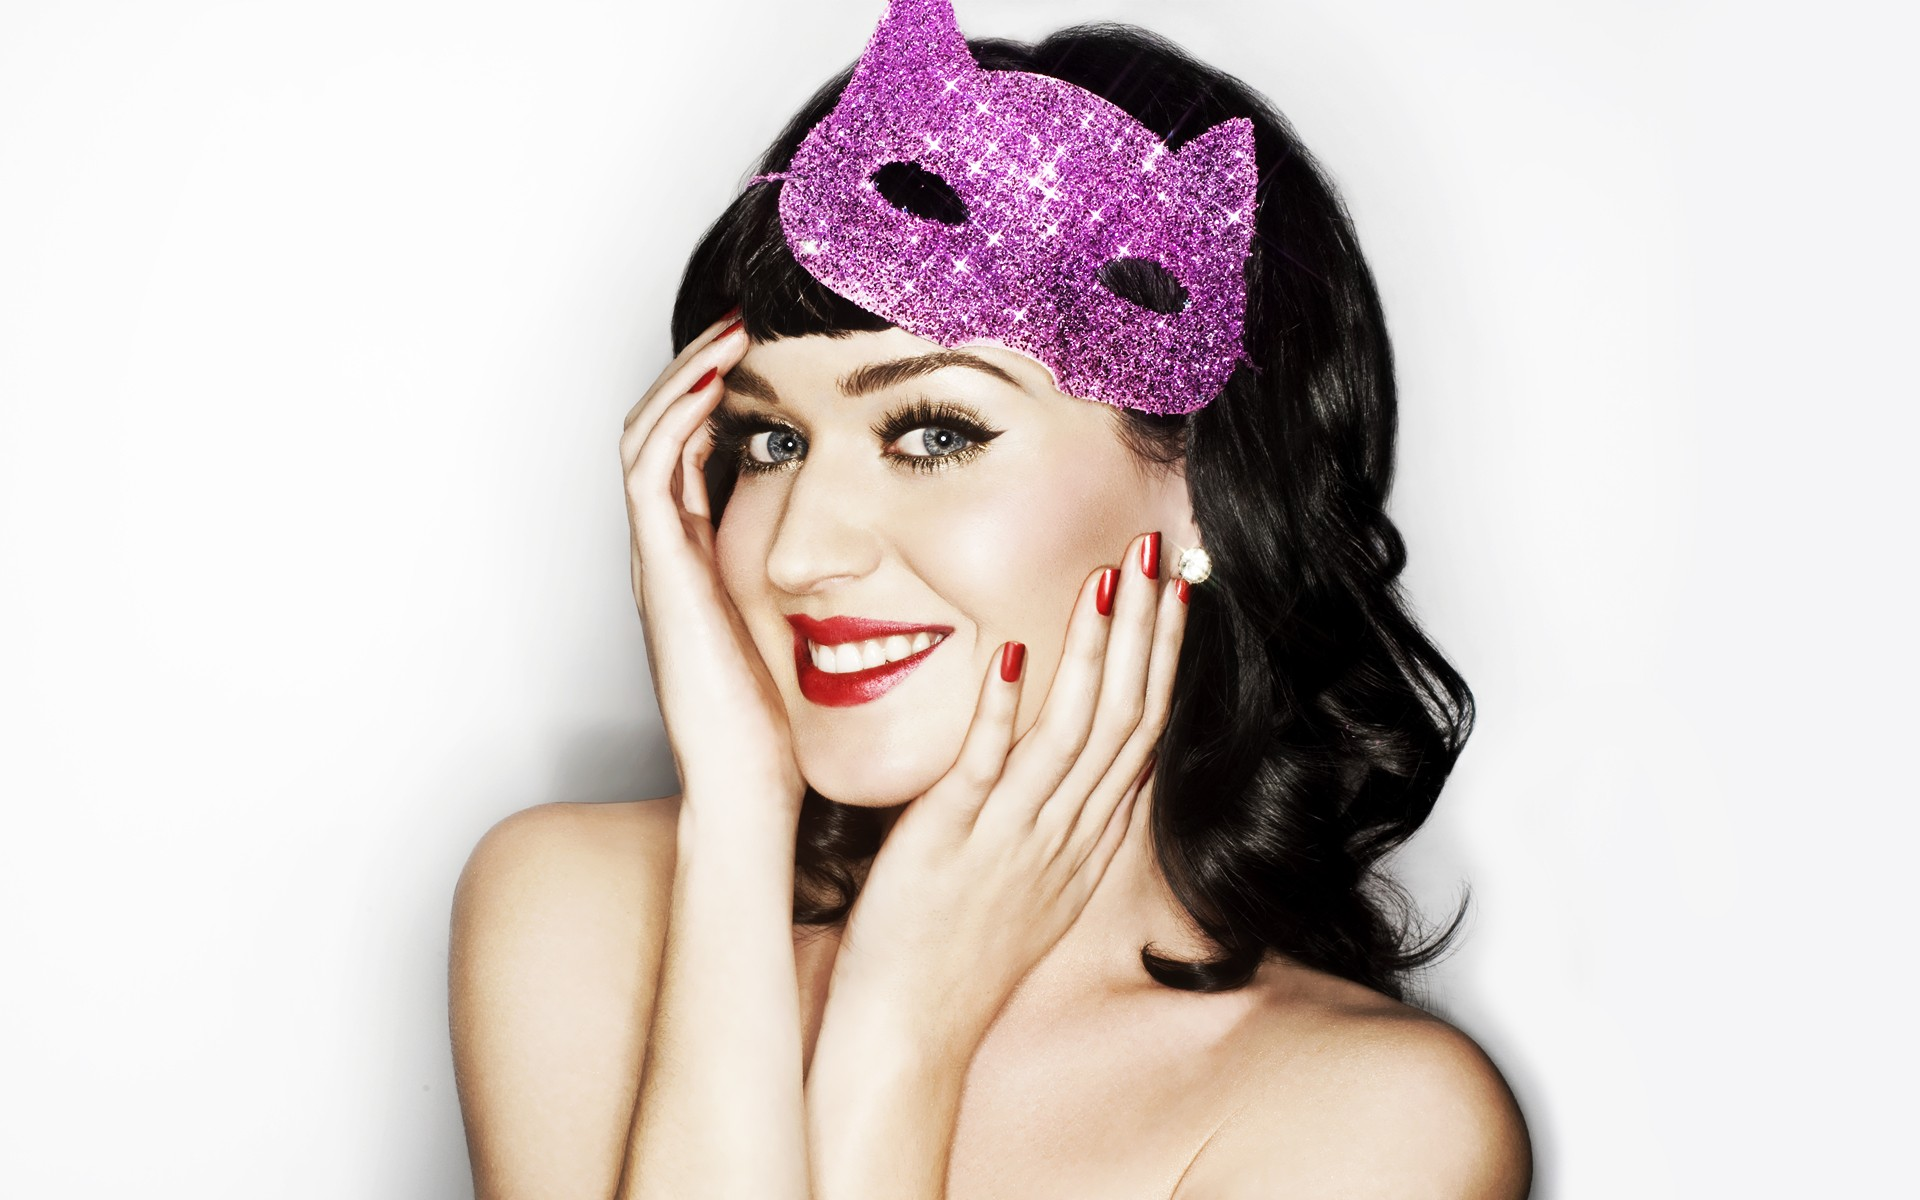 Quickly Book Katy Perry Here | Katy Perry Booking Info and Price Katy Perry